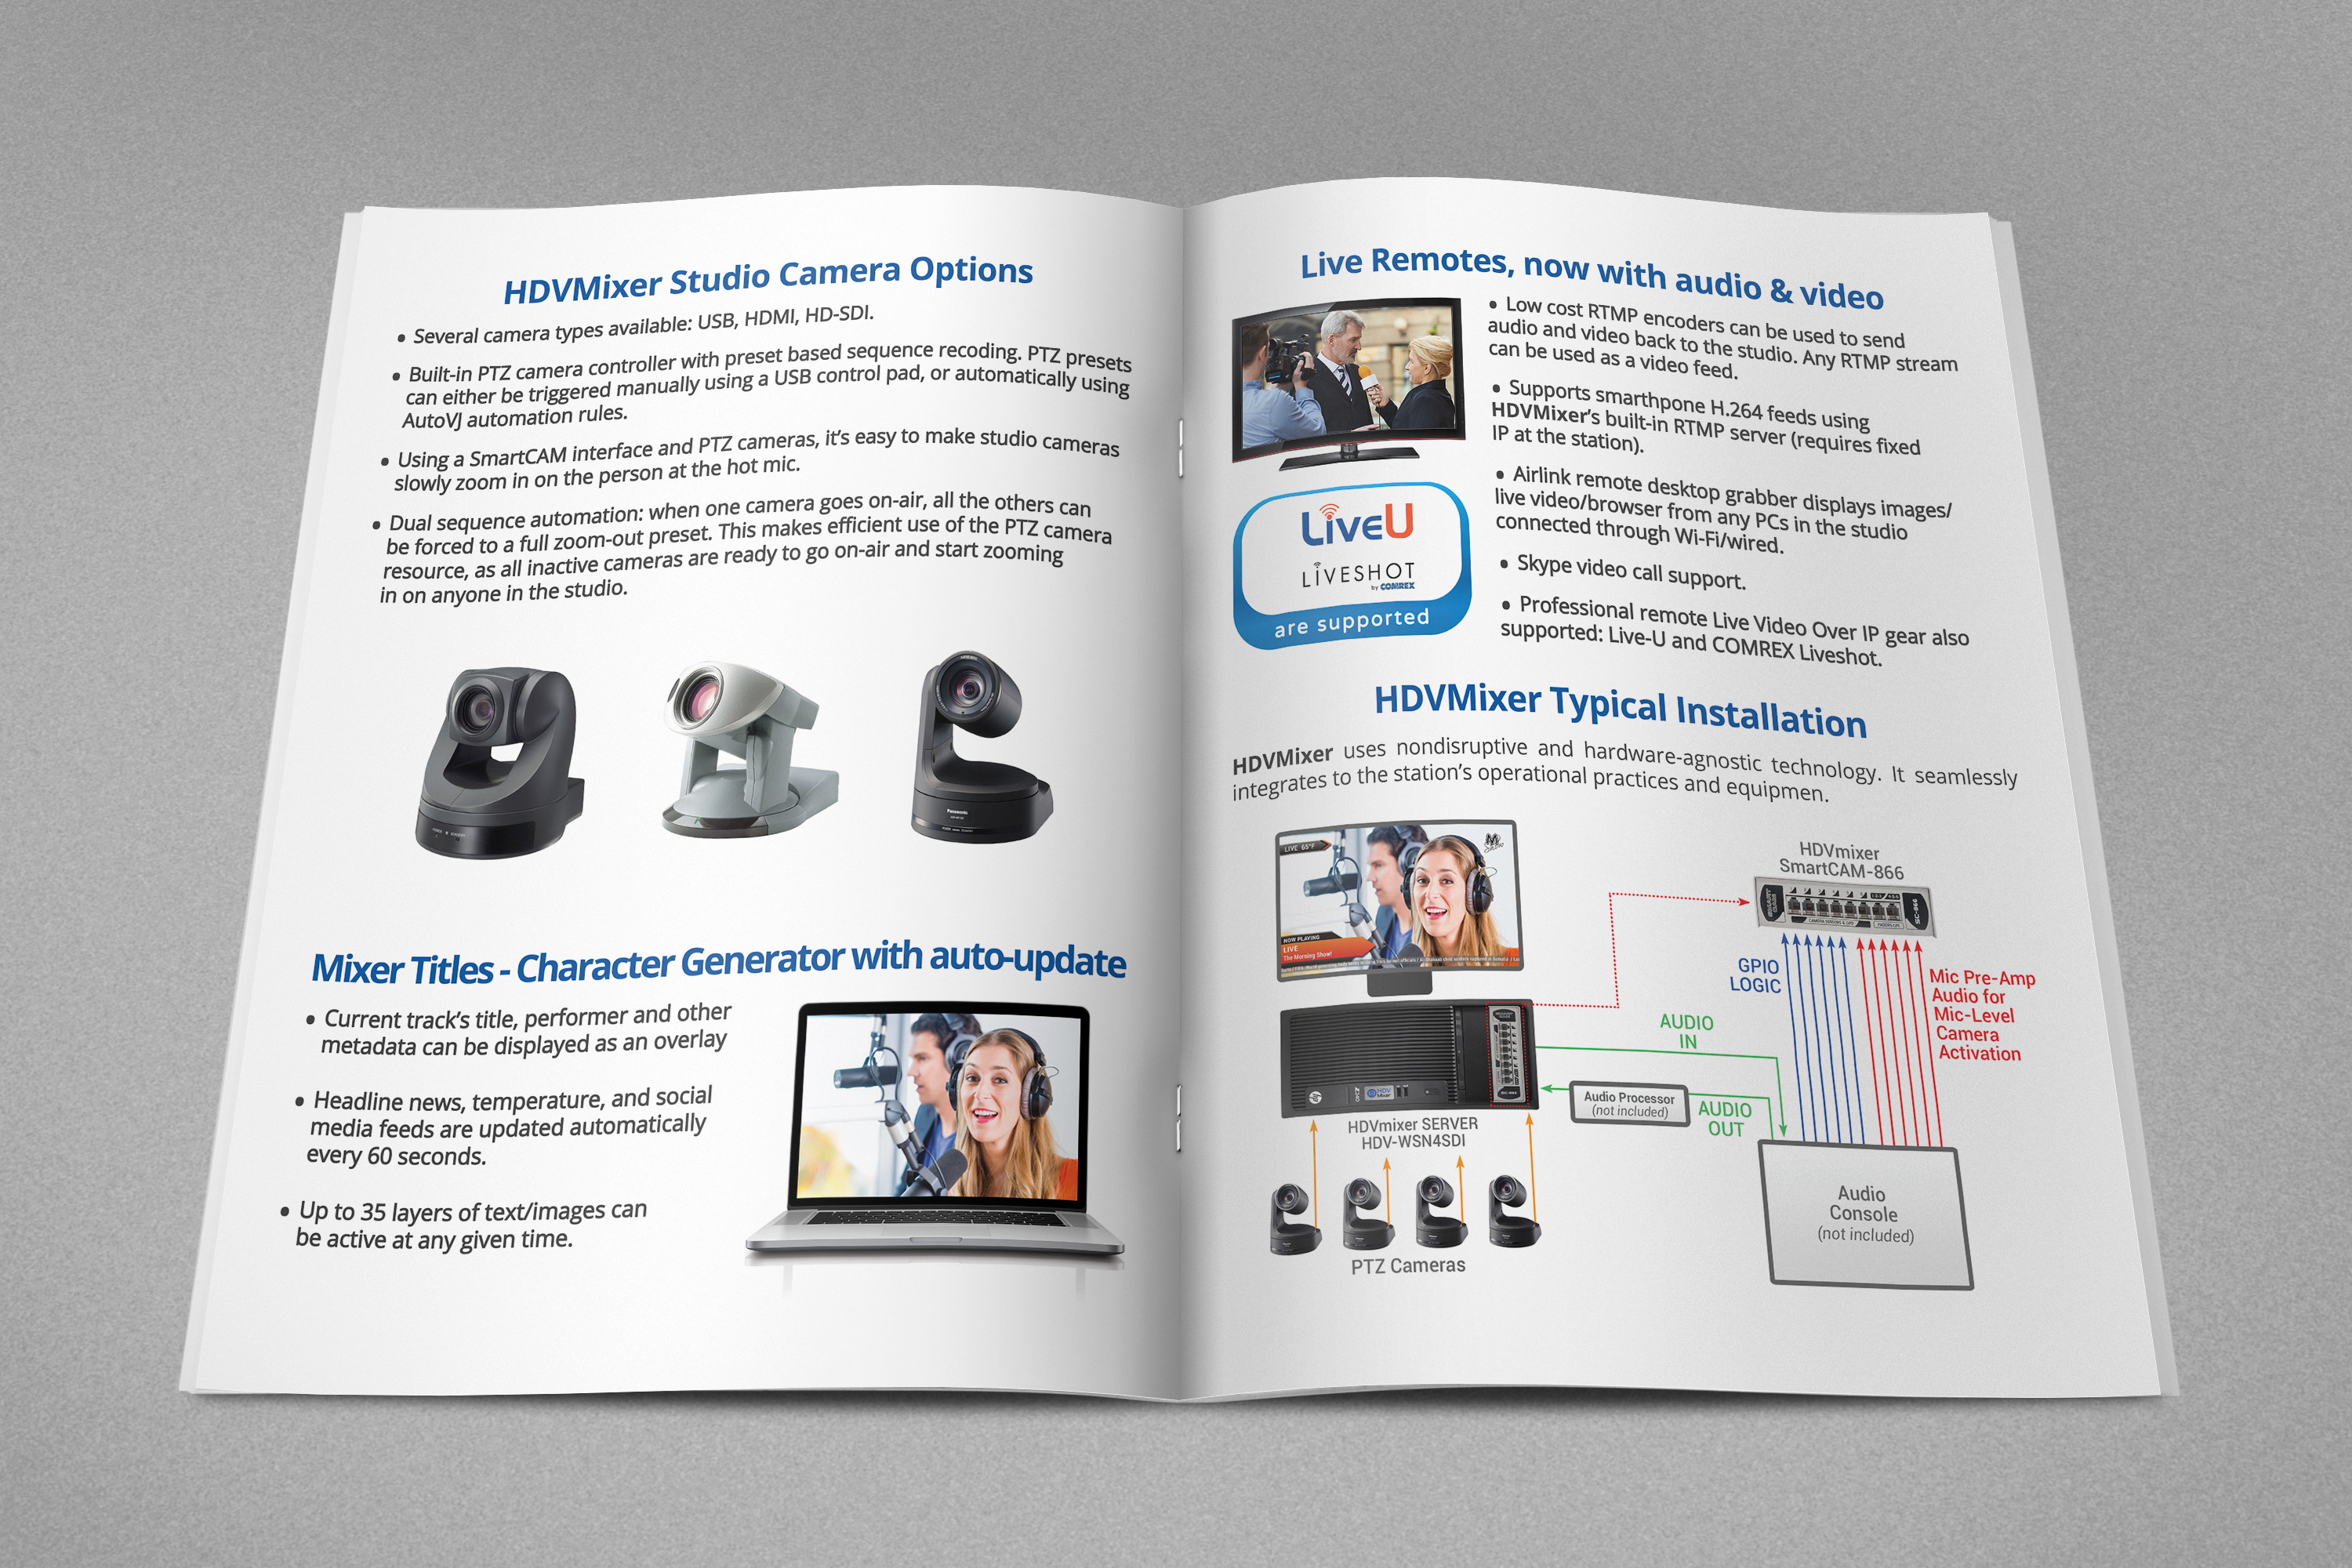 Change aesthetics and layout for HDVMixer brochure - M.O.Z.G Studio